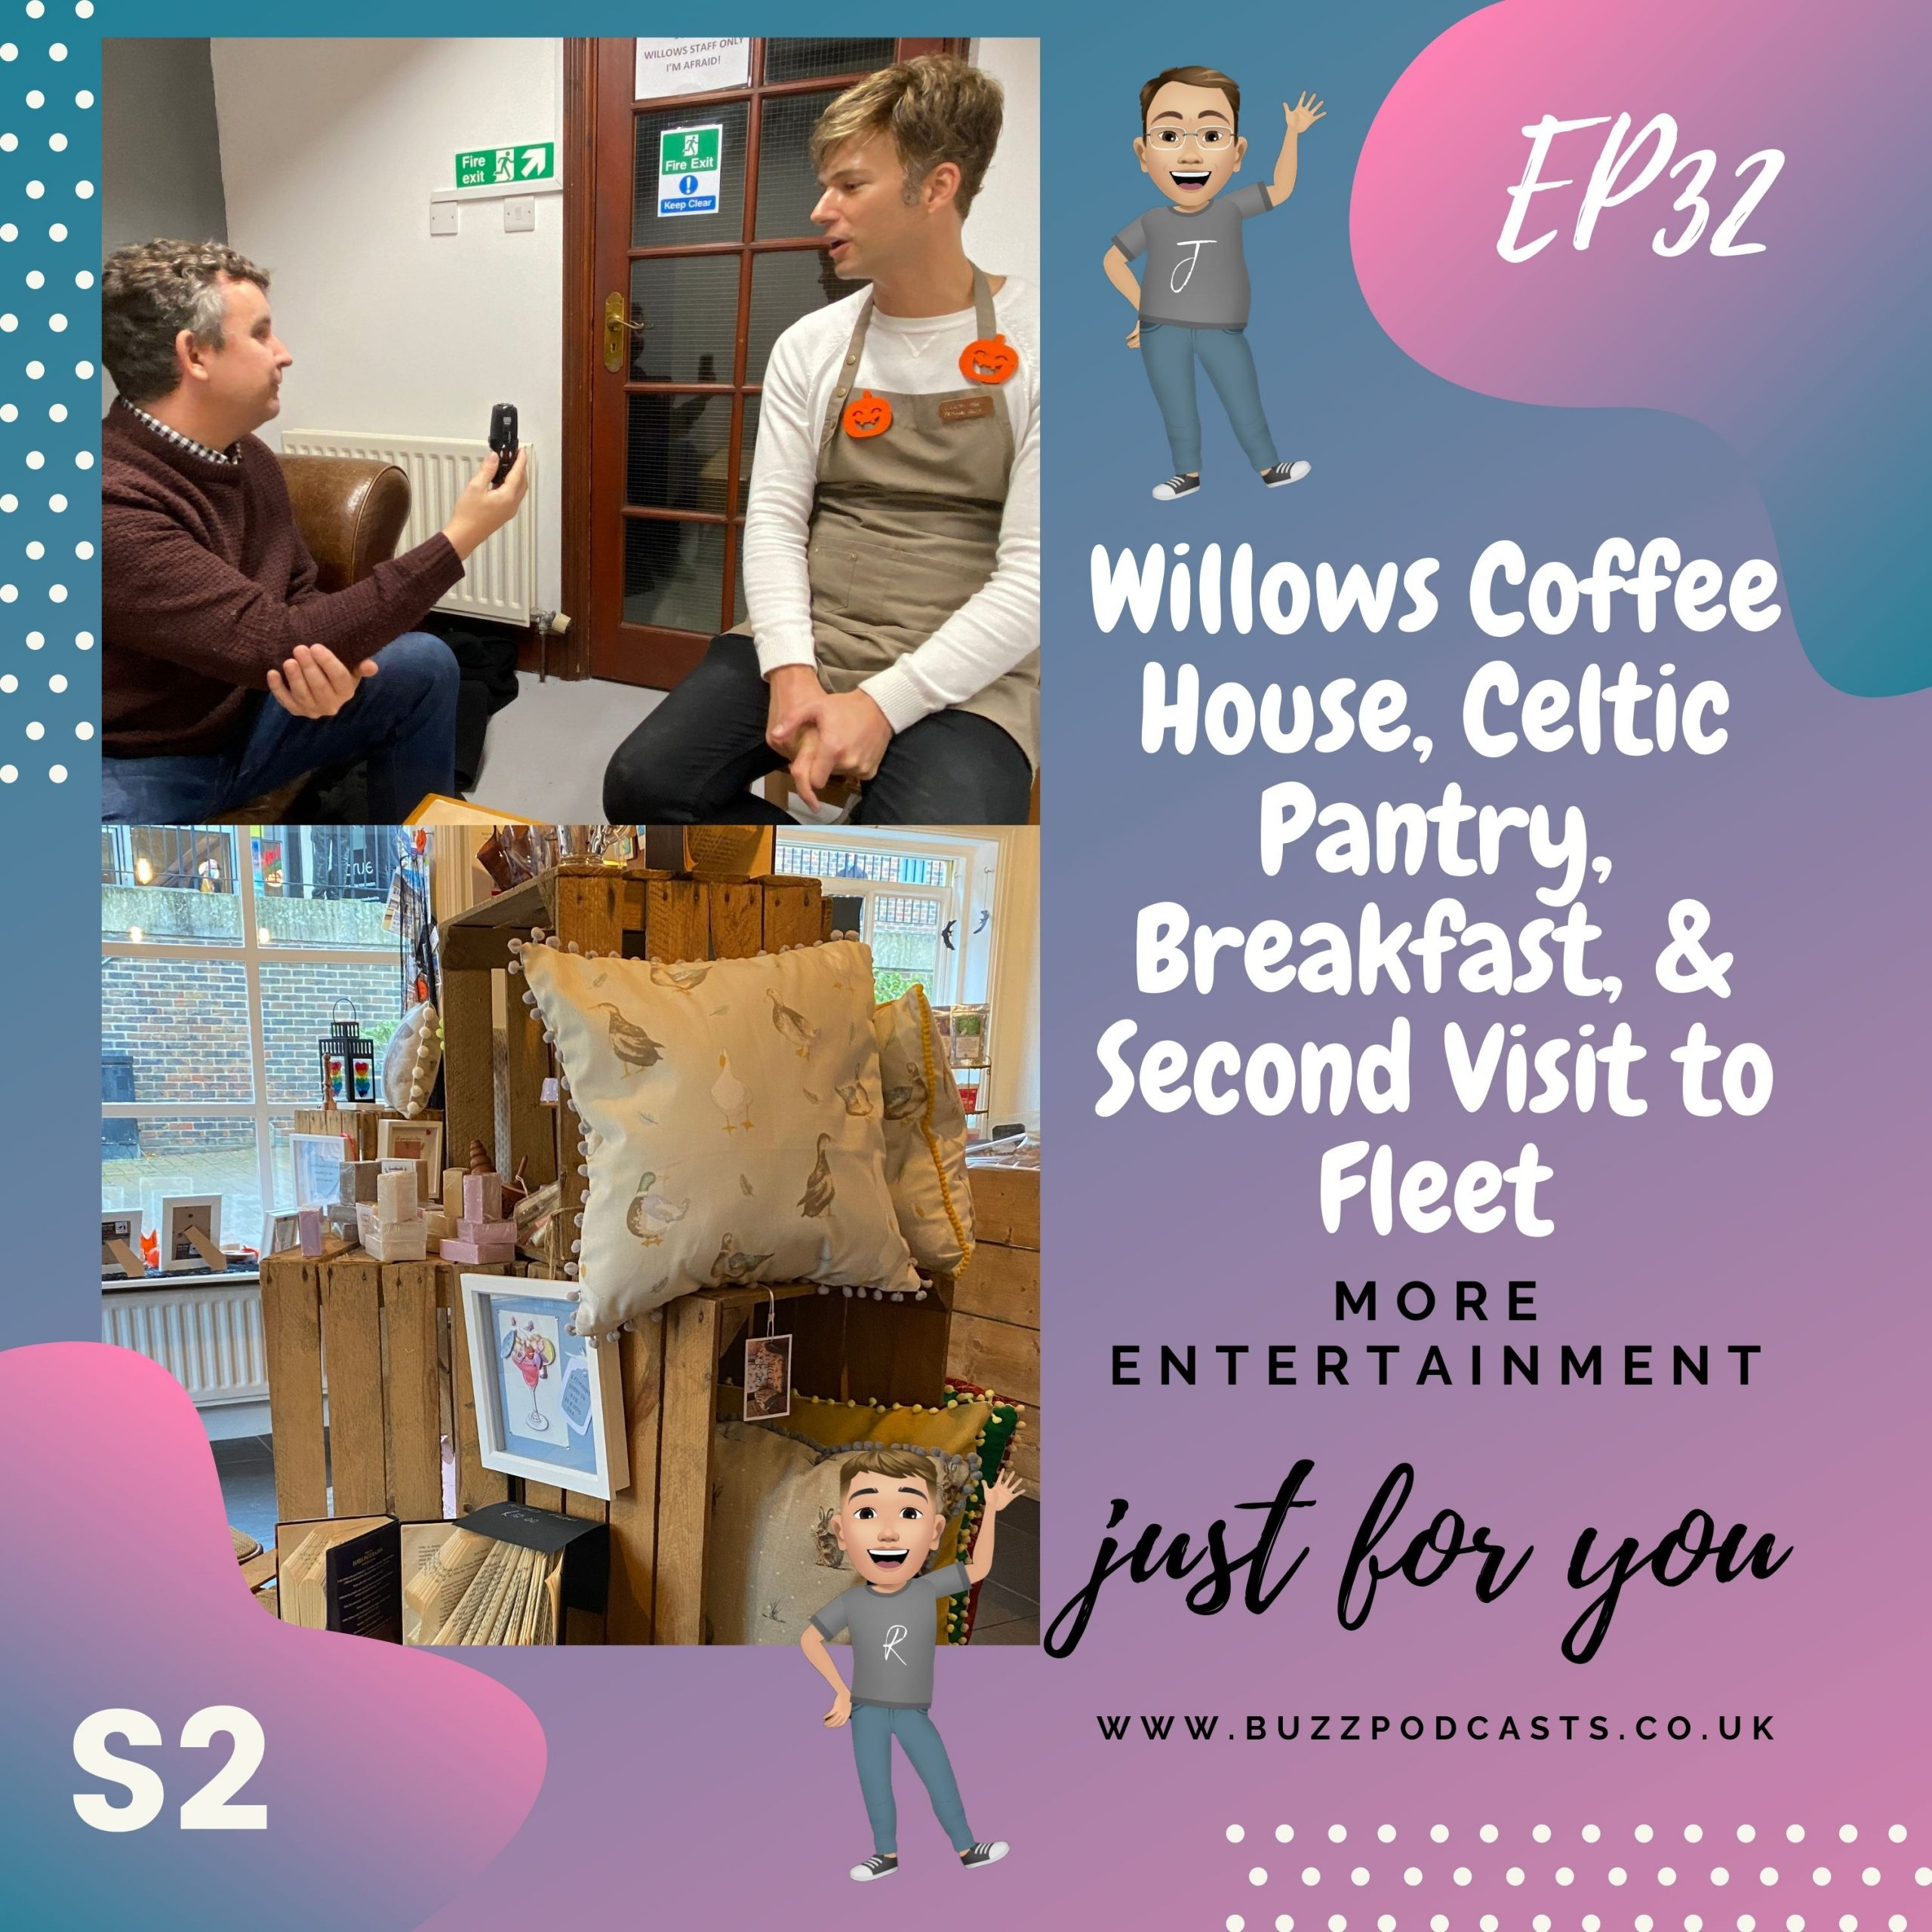 Willows Coffee House, Celtic Pantry, Breakfast, & Second Visit to Fleet